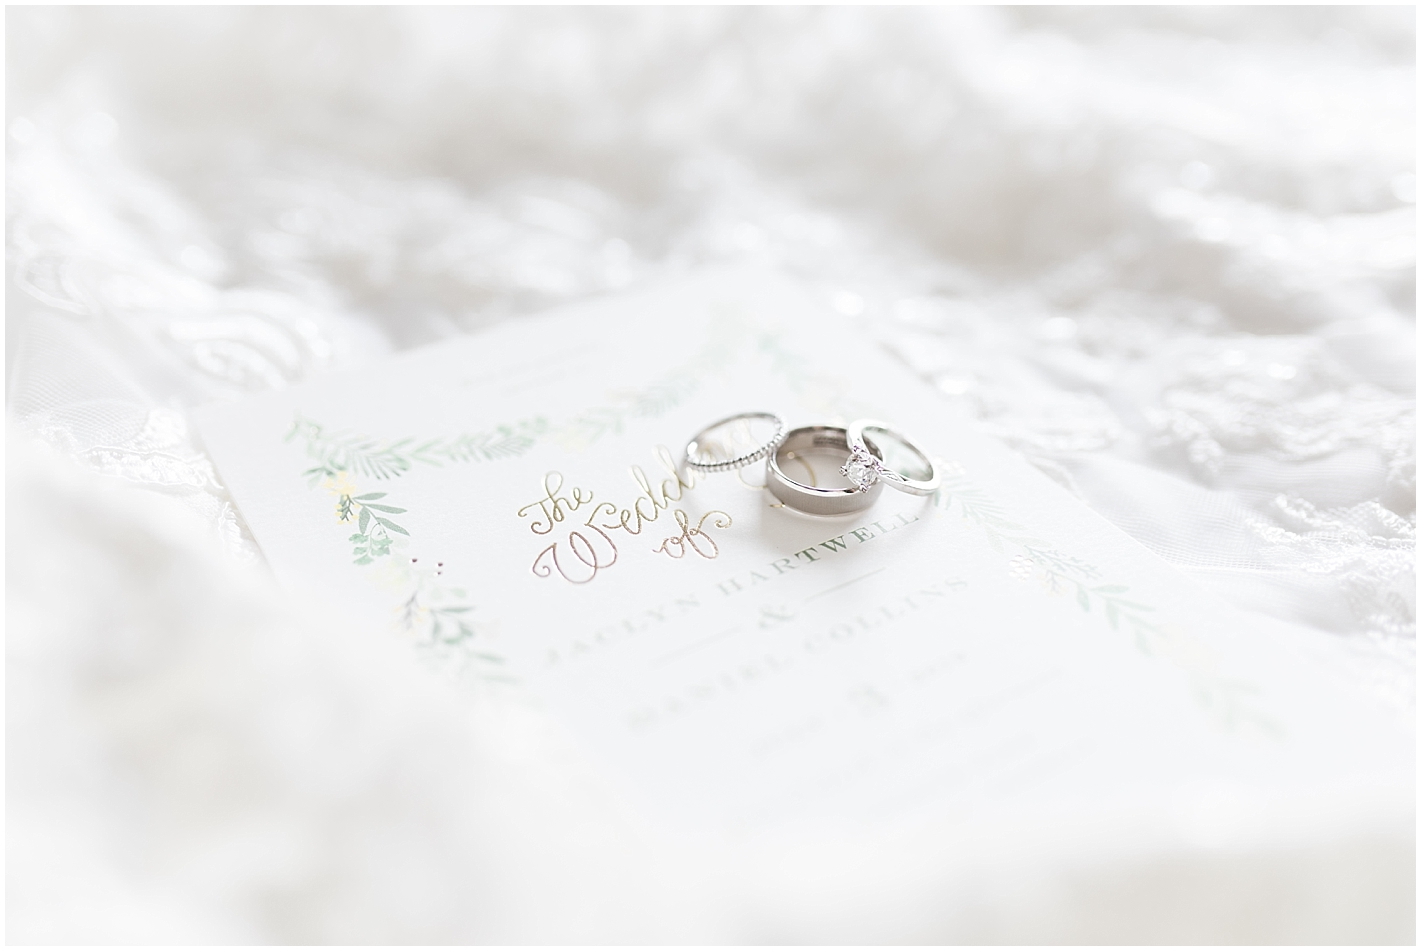 Wedding bands Photo by Alyssa Parker Photography